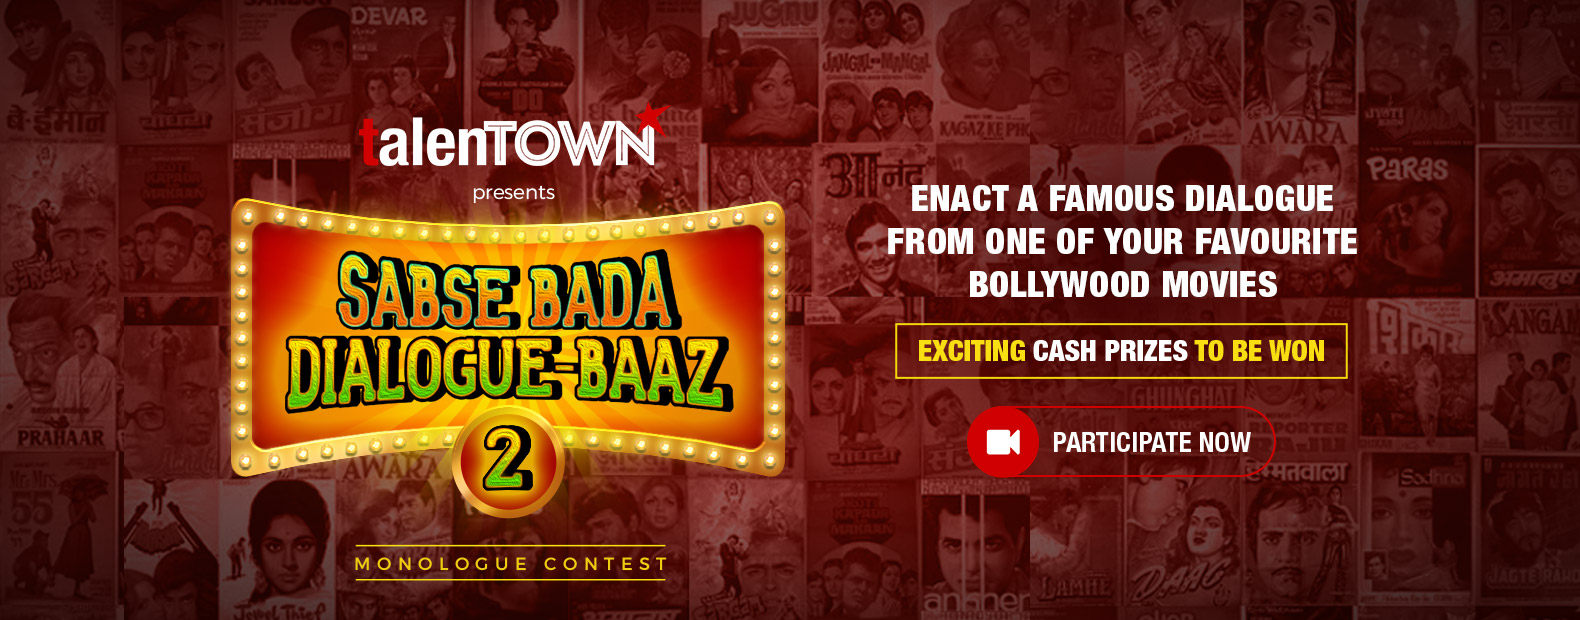 talenTOWN presents SABSE BADA DIALOGUE BAAZ 2